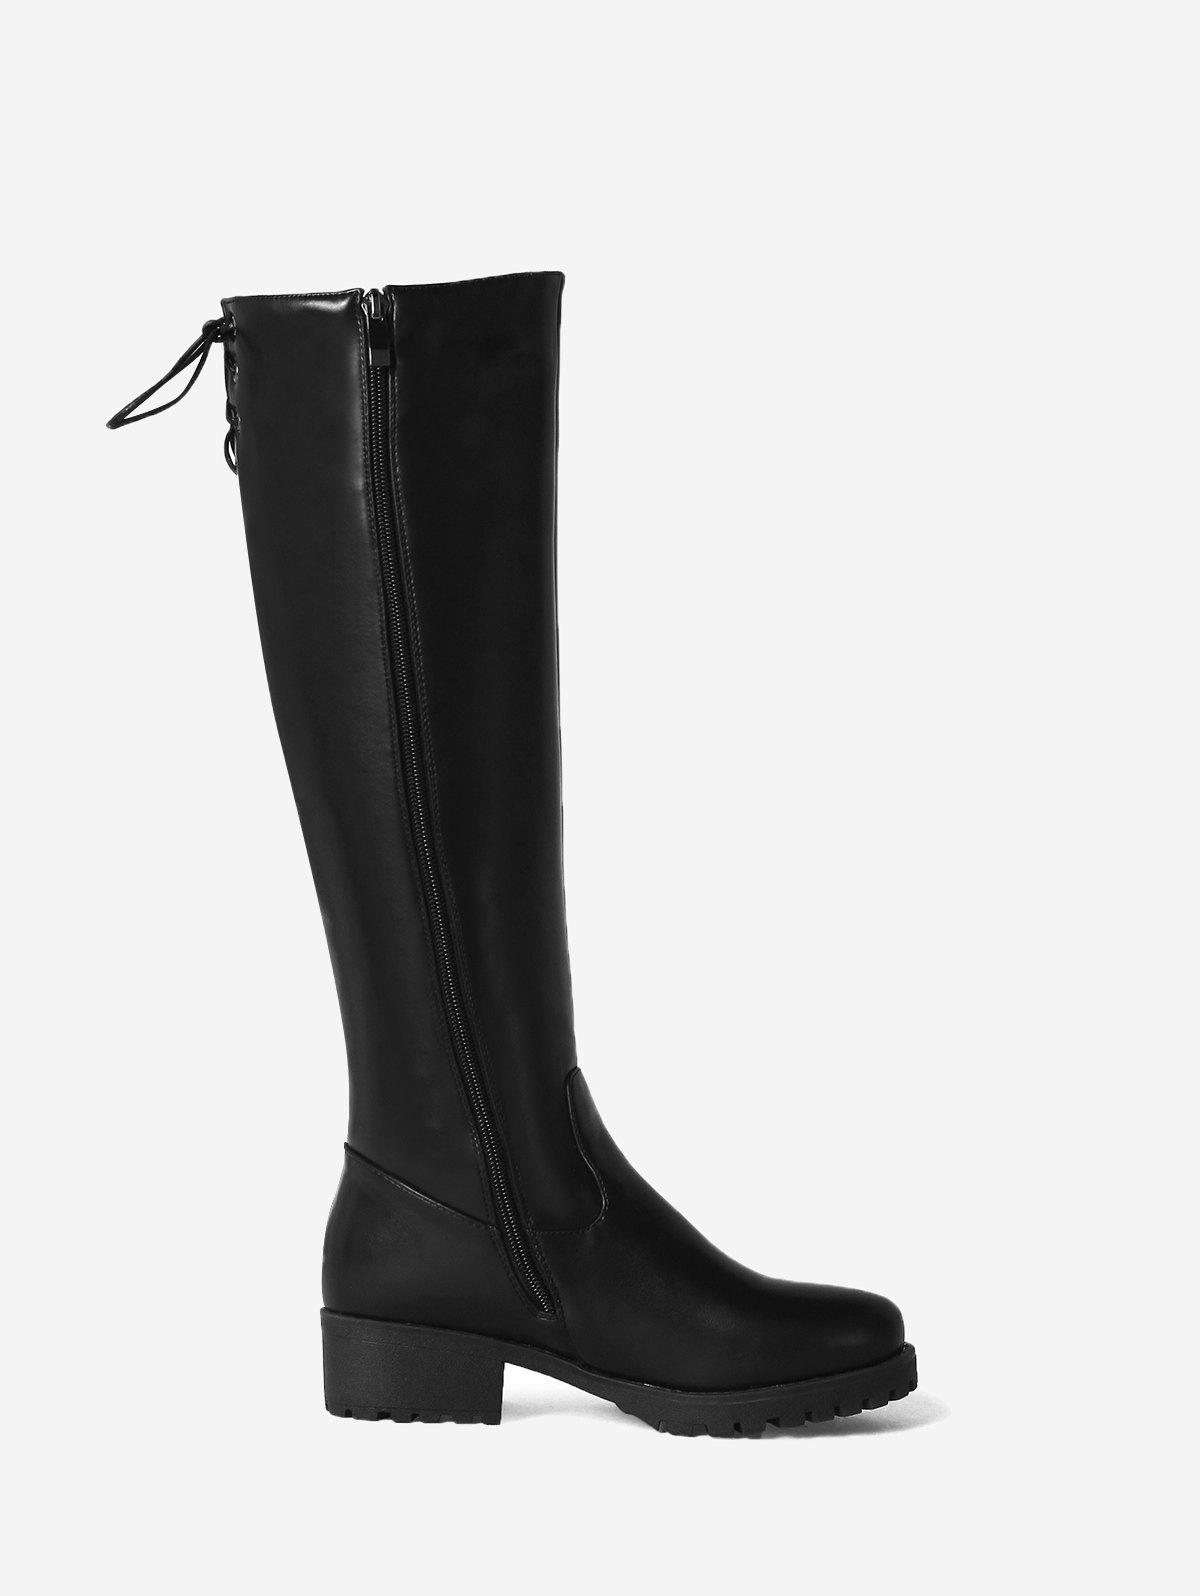 Lace Up Back Block Heel Mid Calf Boots - BLACK 40